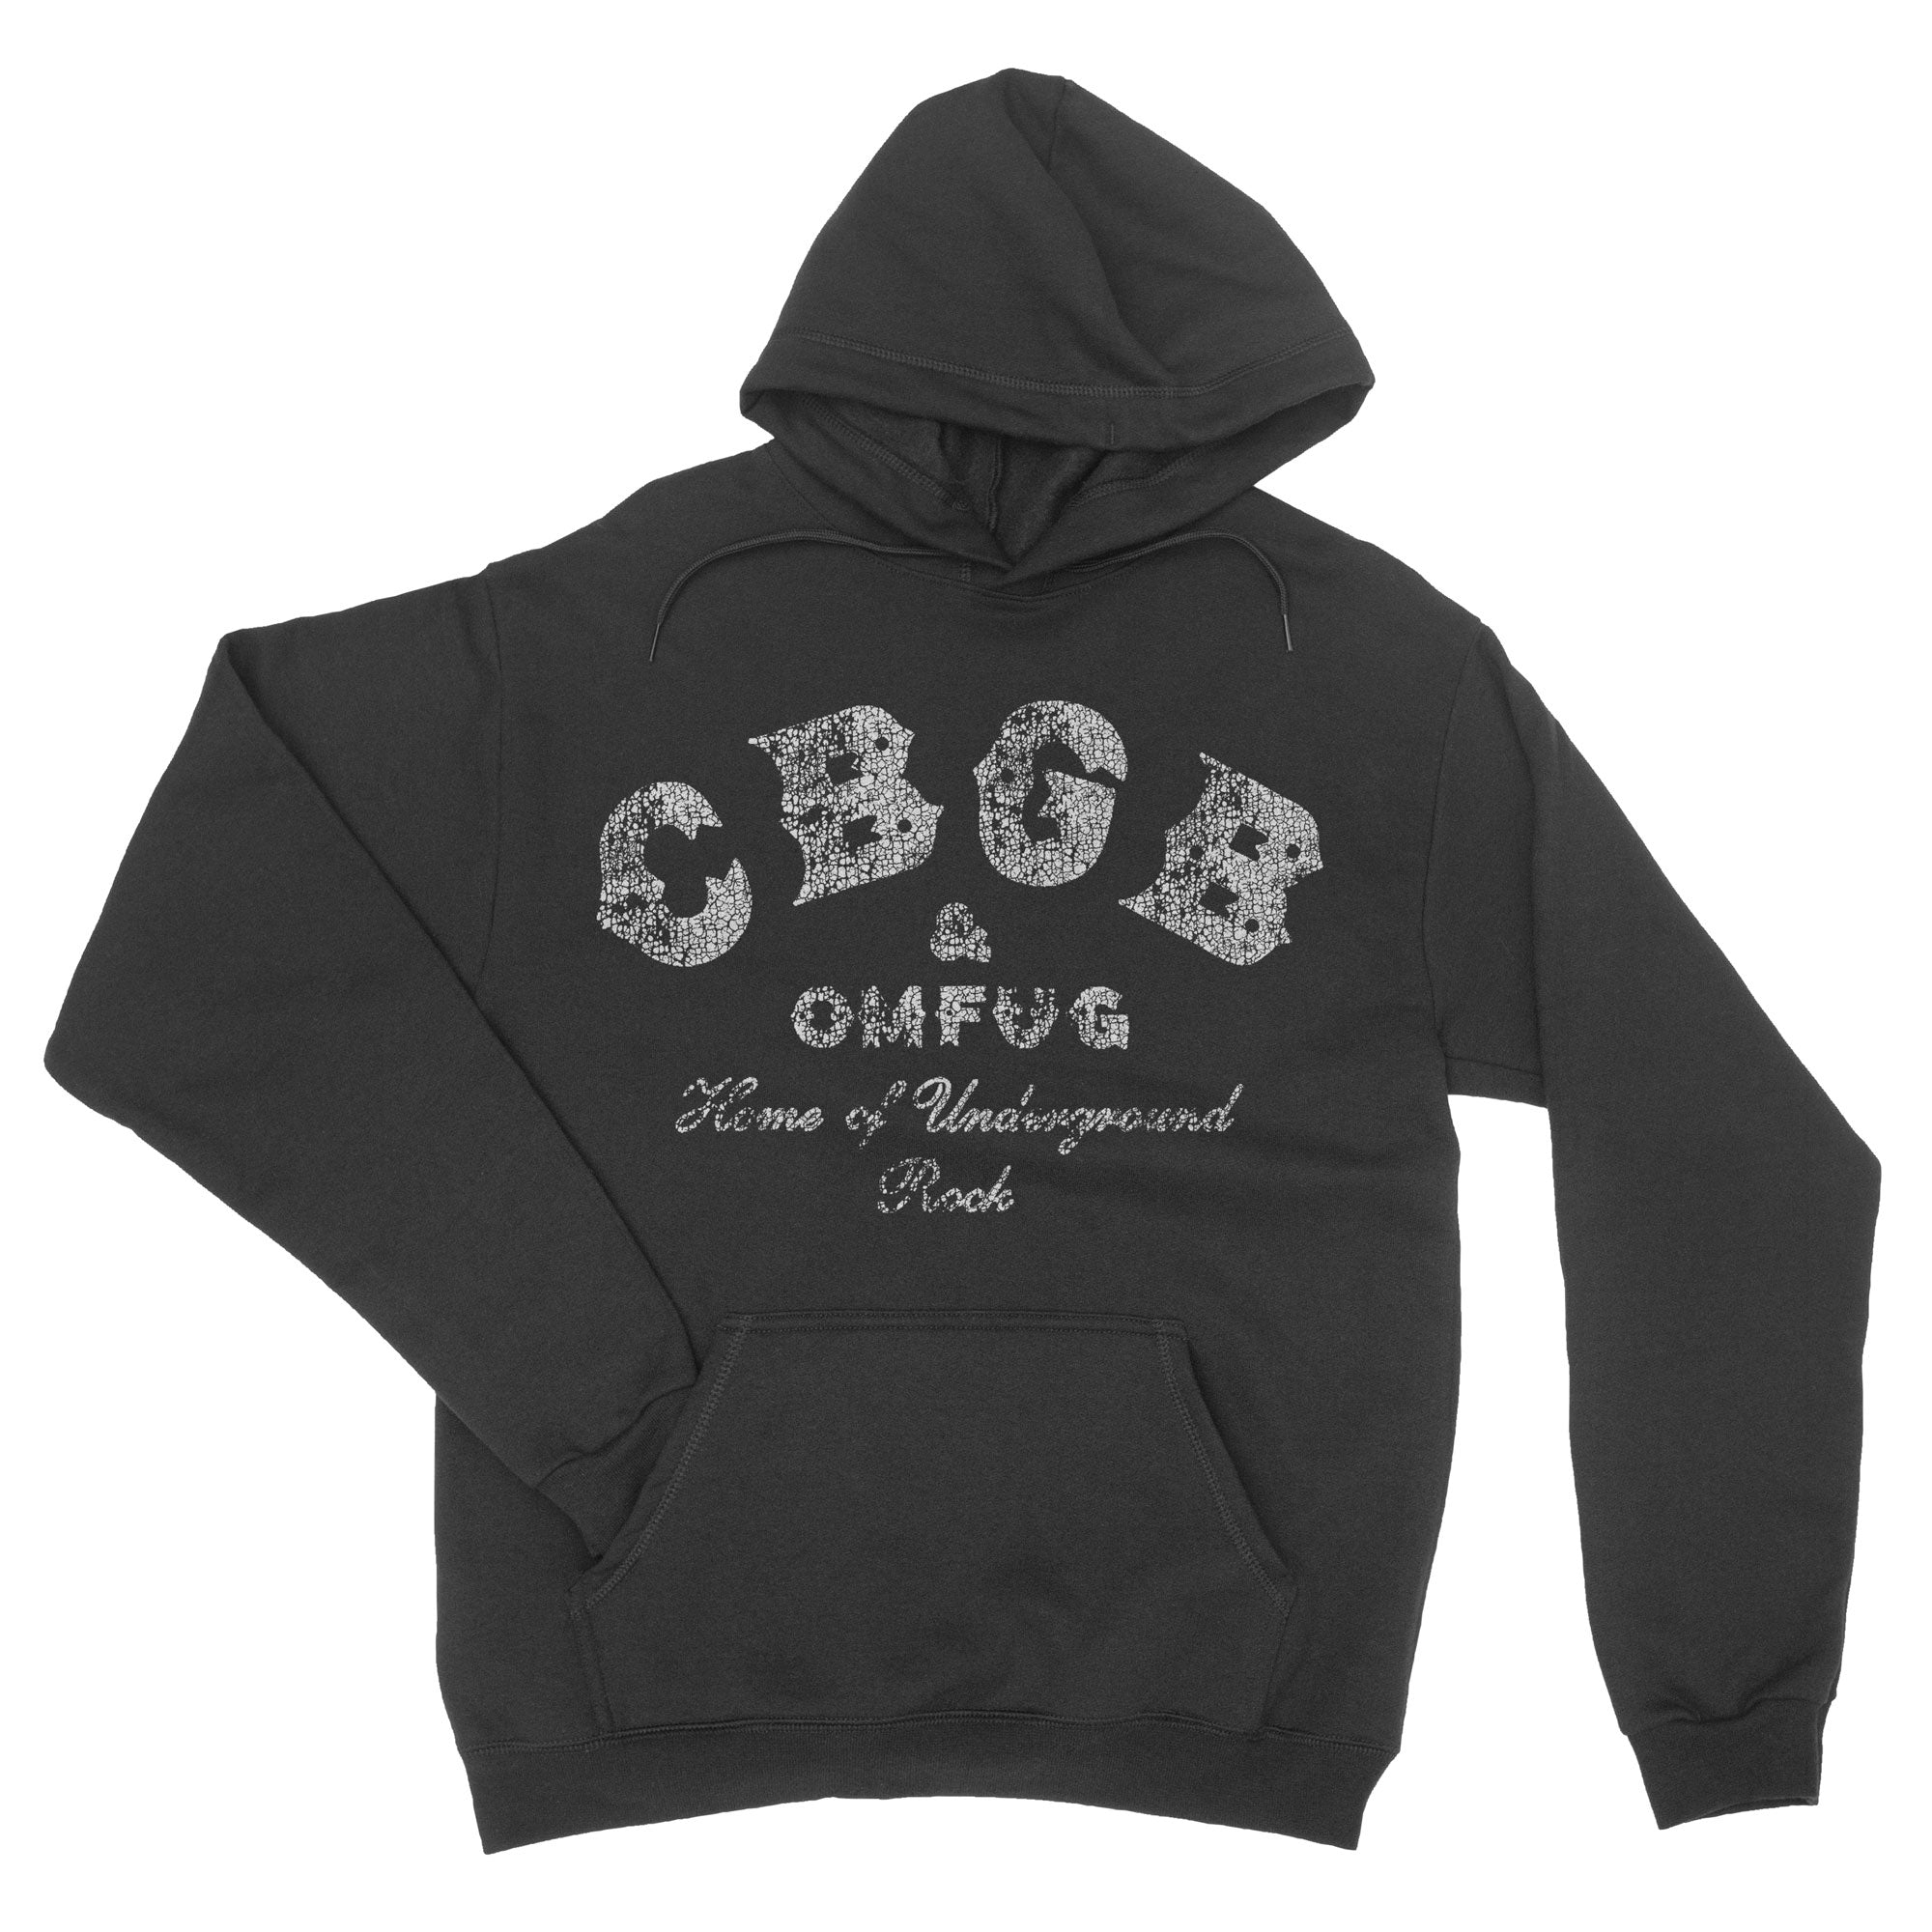 CBGB OMFUG Hoodie Vintage distressed retro punk Sweatshirt-Hoodies-Shirtasaurus-S-Black-Shirtasaurus